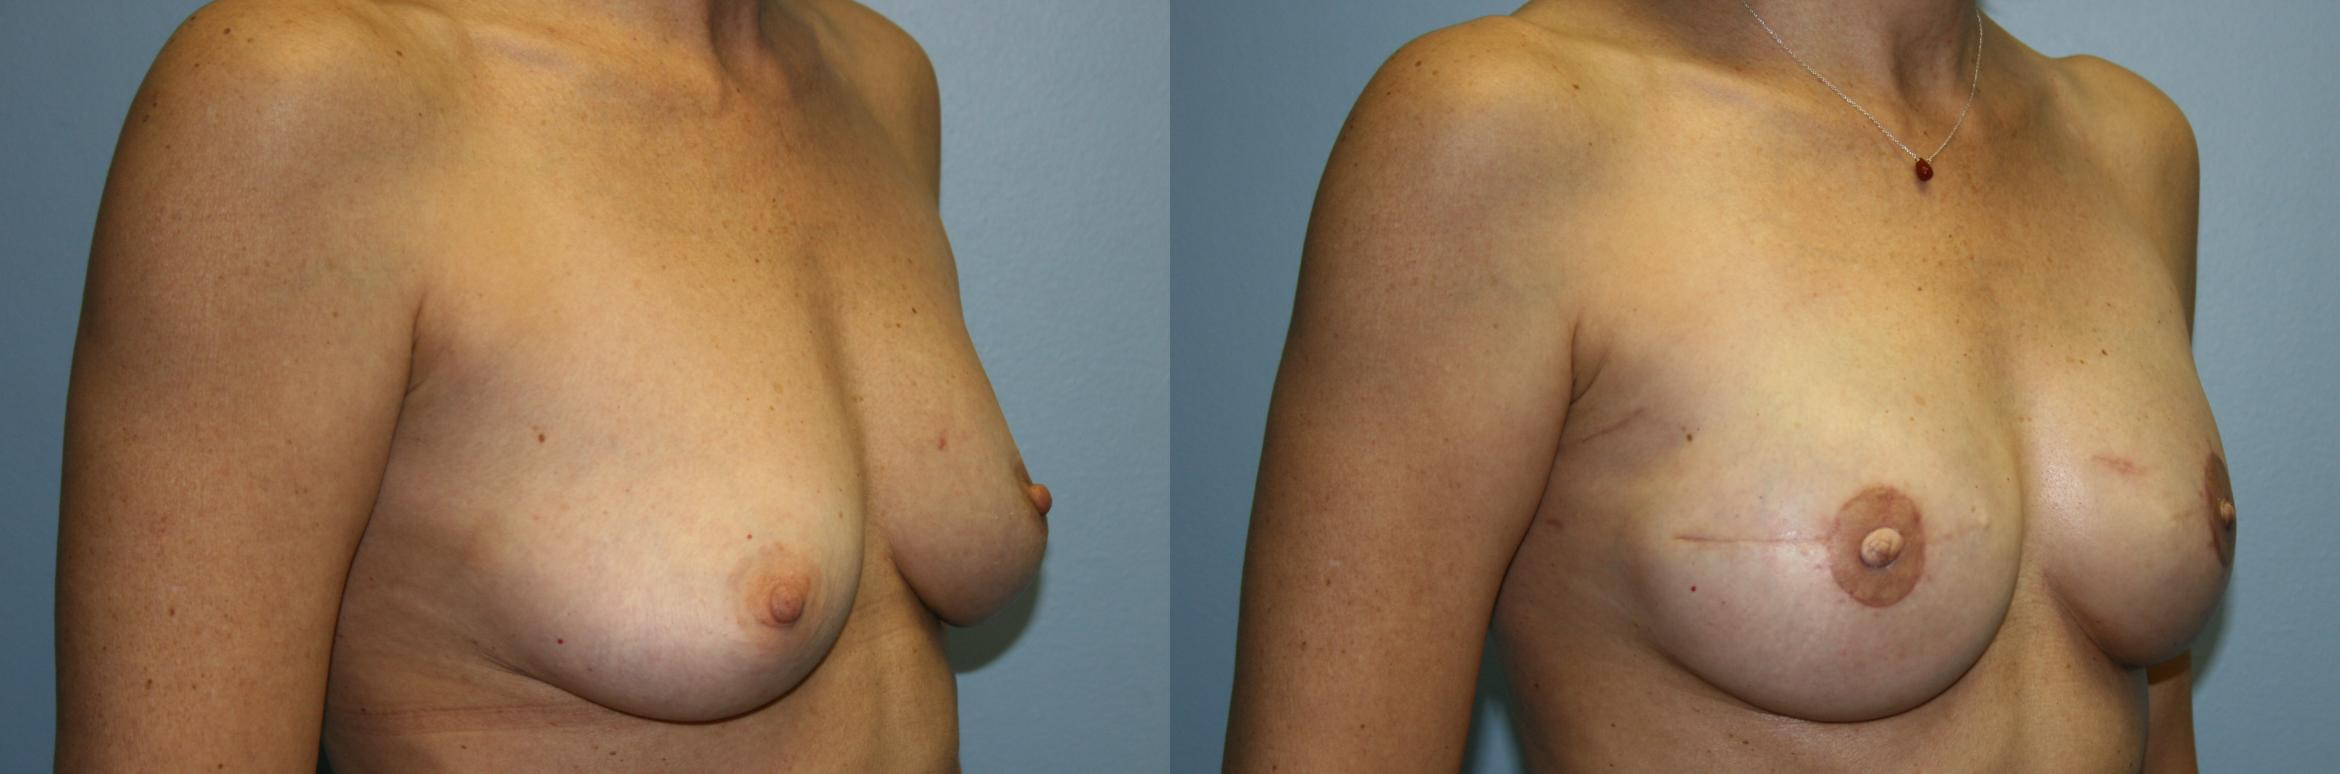 Breast Reconstruction Case 50 Before & After View #2 | Downers Grove, IL | Dr. Sandeep Jejurikar